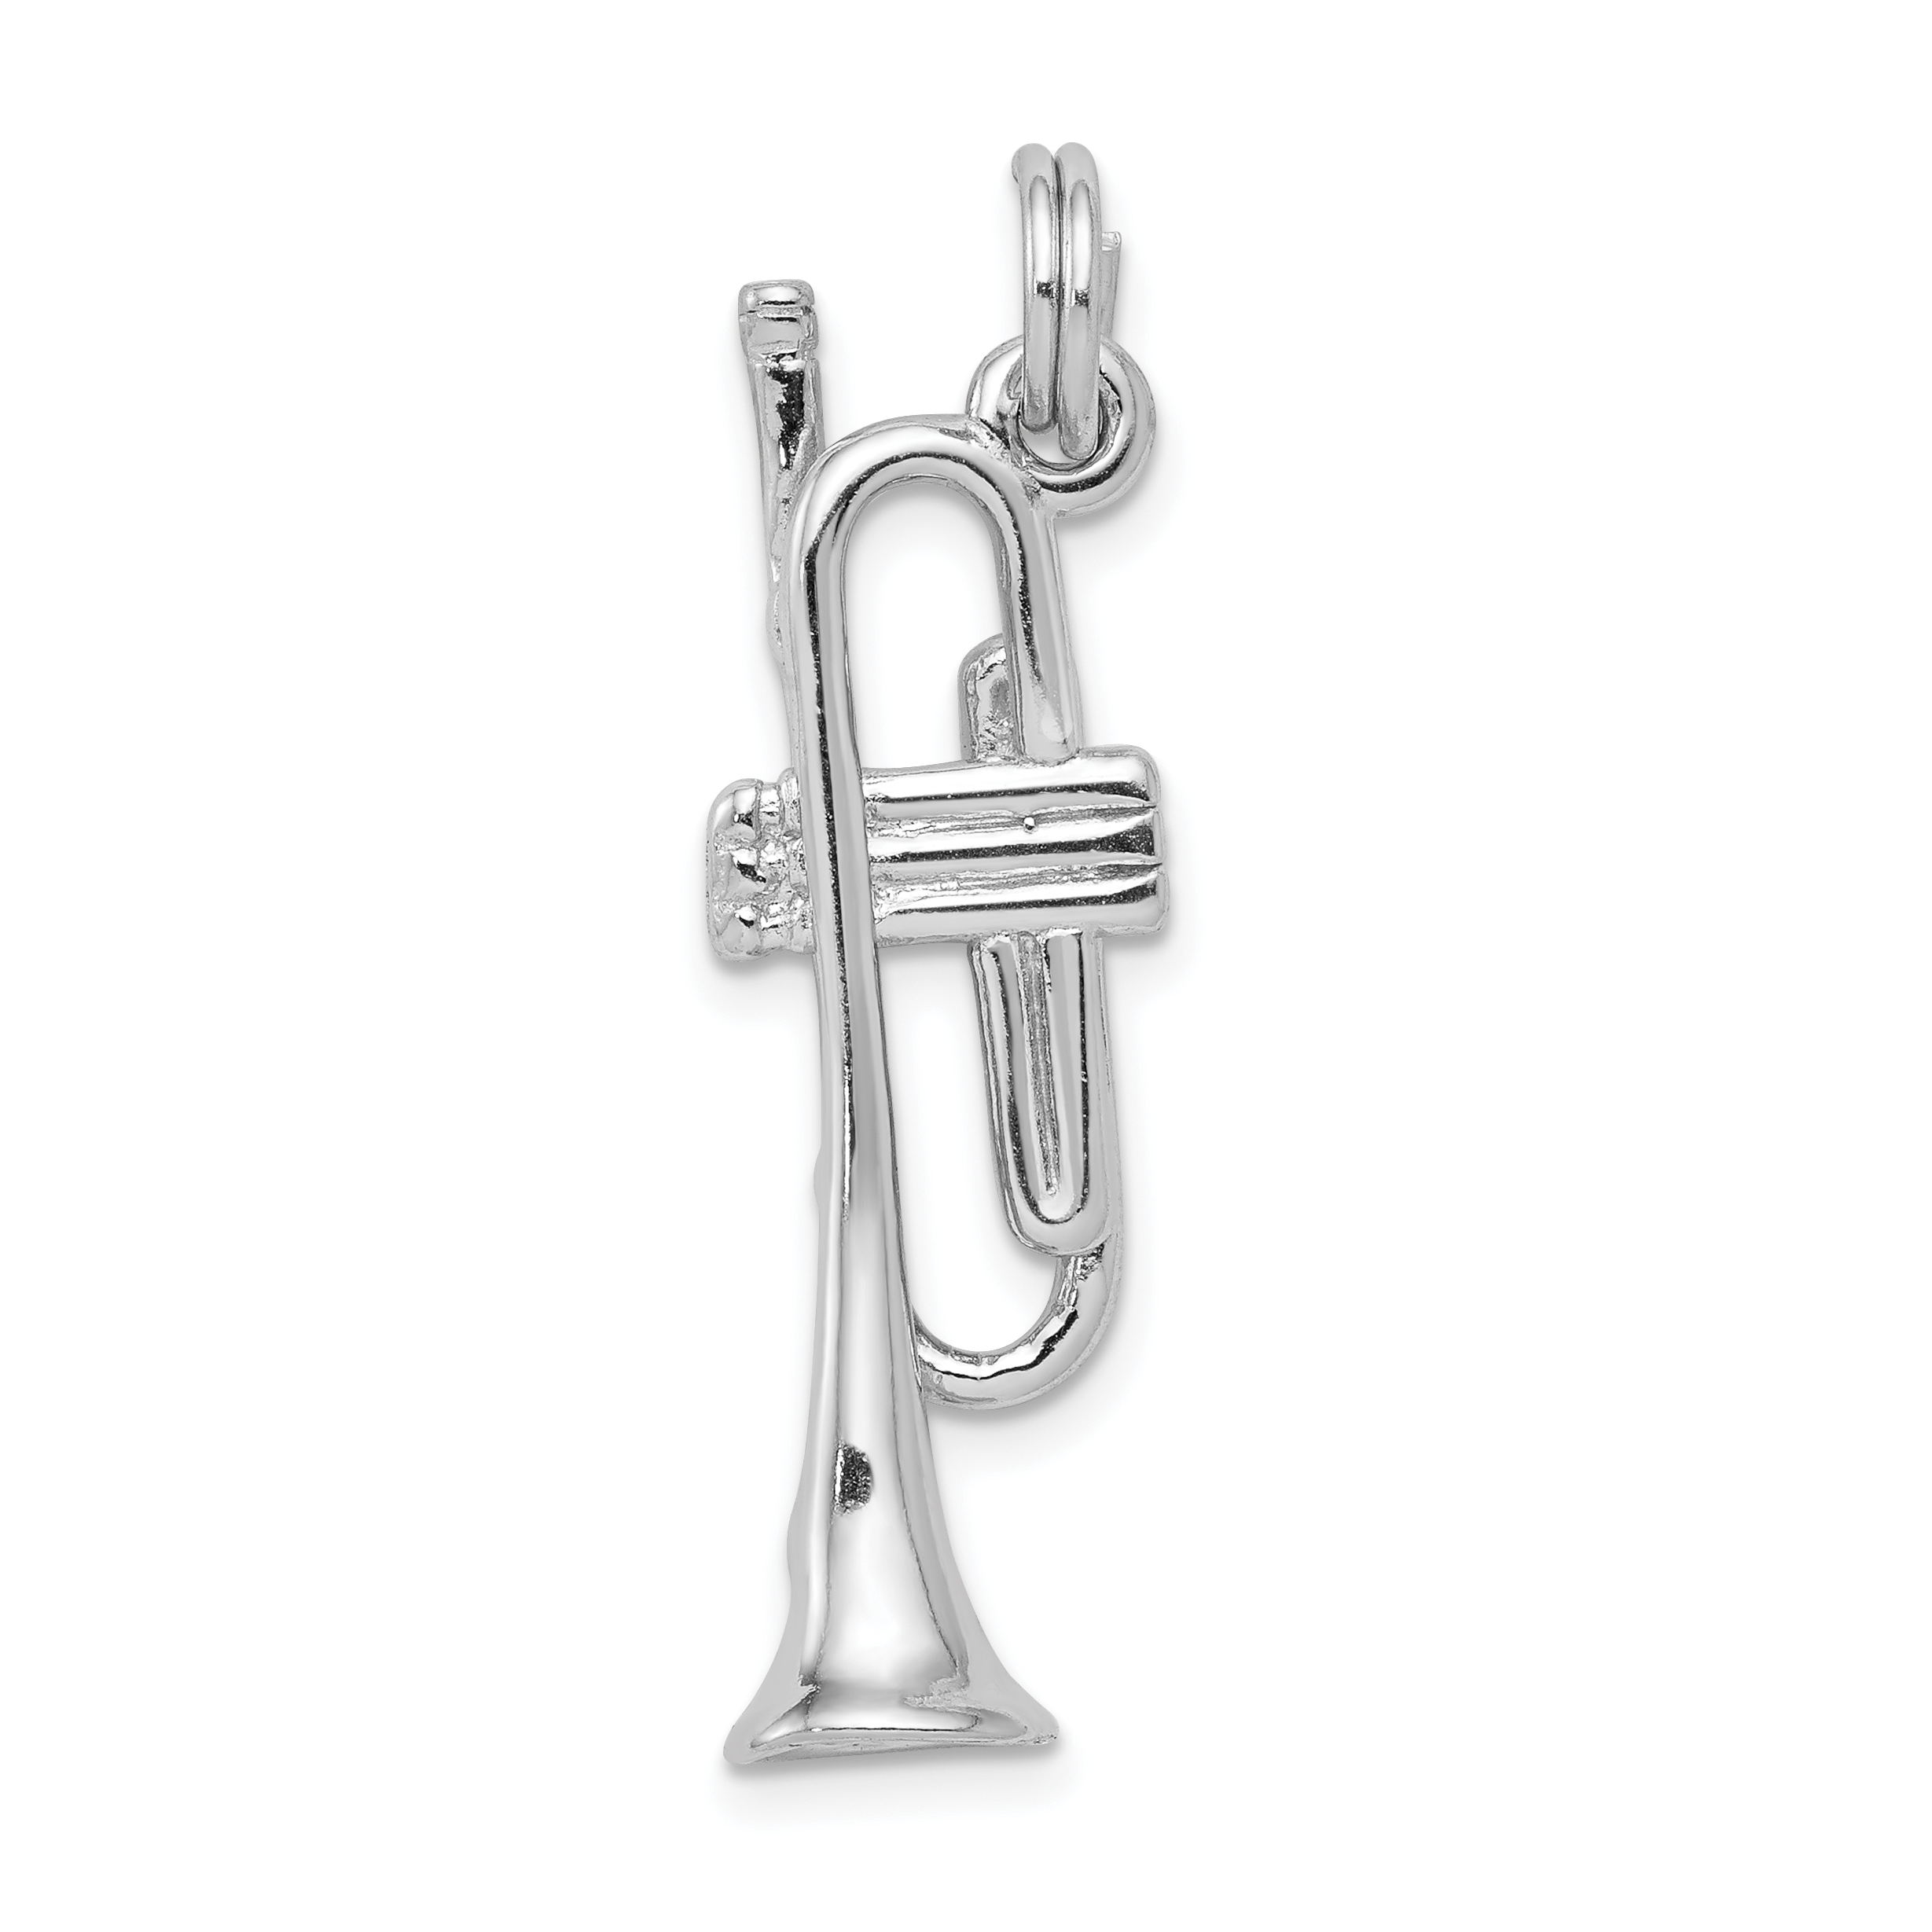 STERLING SILVER 925 TRUMPET CHARM//PENDANT